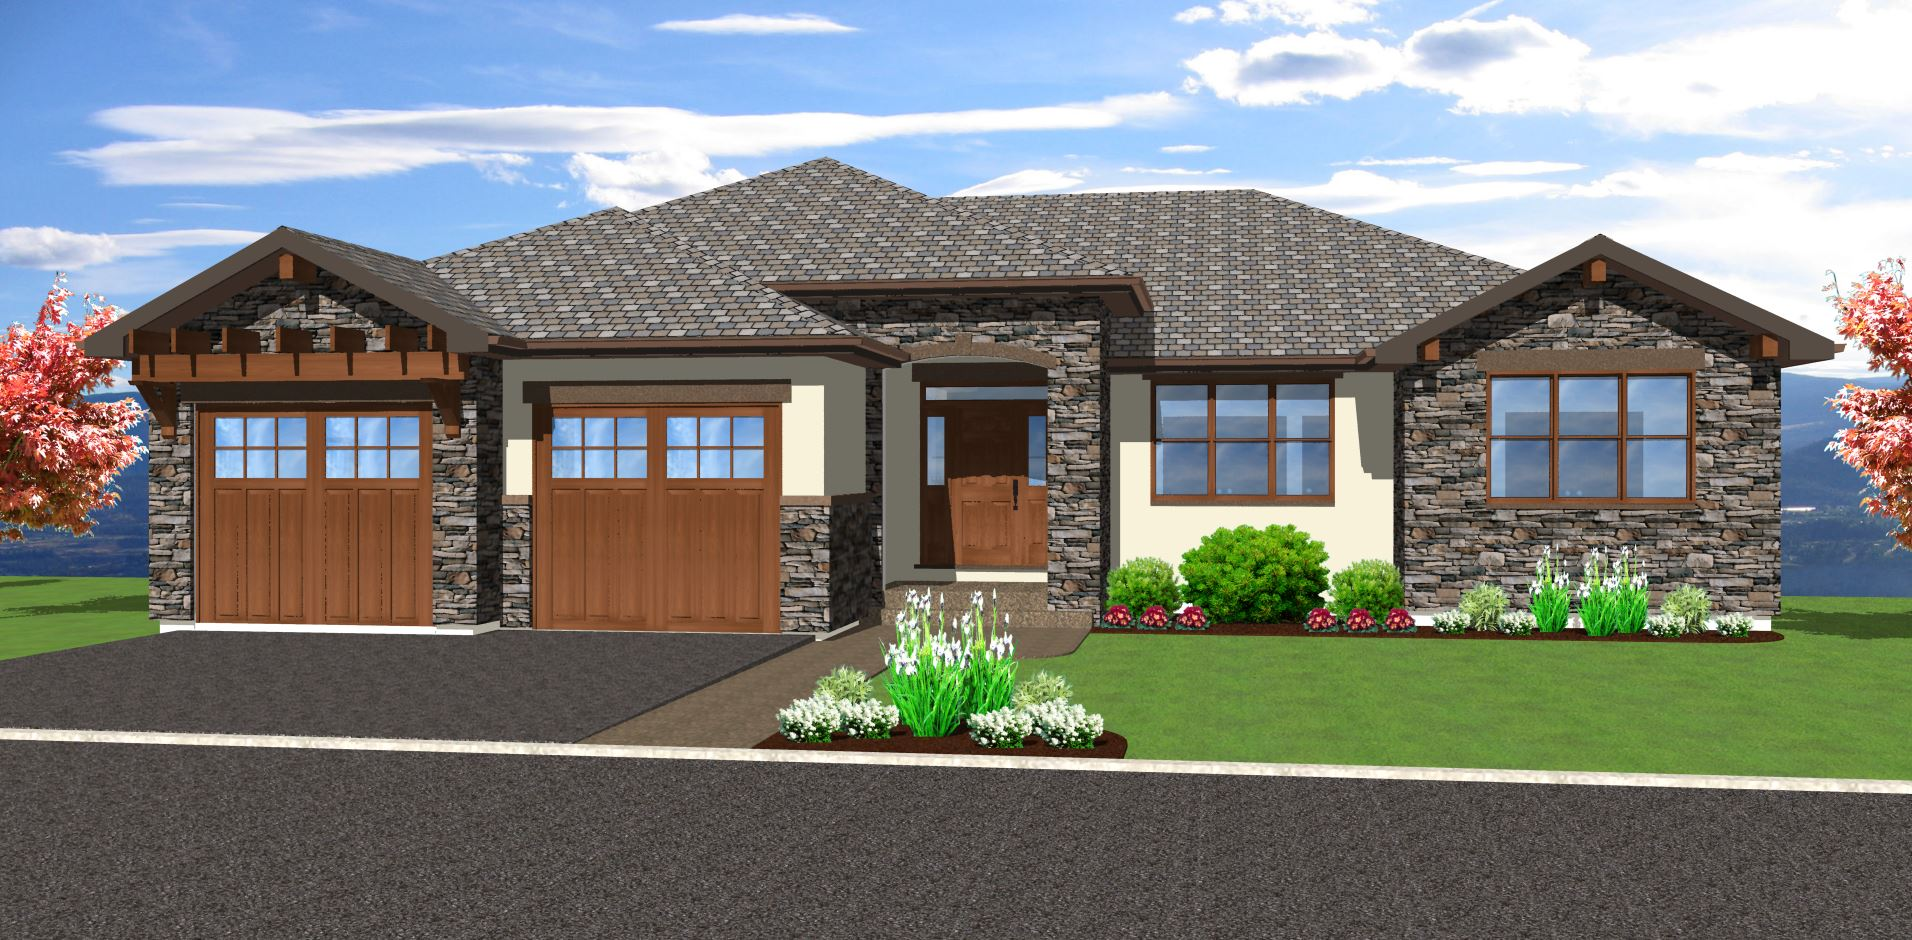 Spacious hillside home with walkout basement 67702mg for Hillside house plans